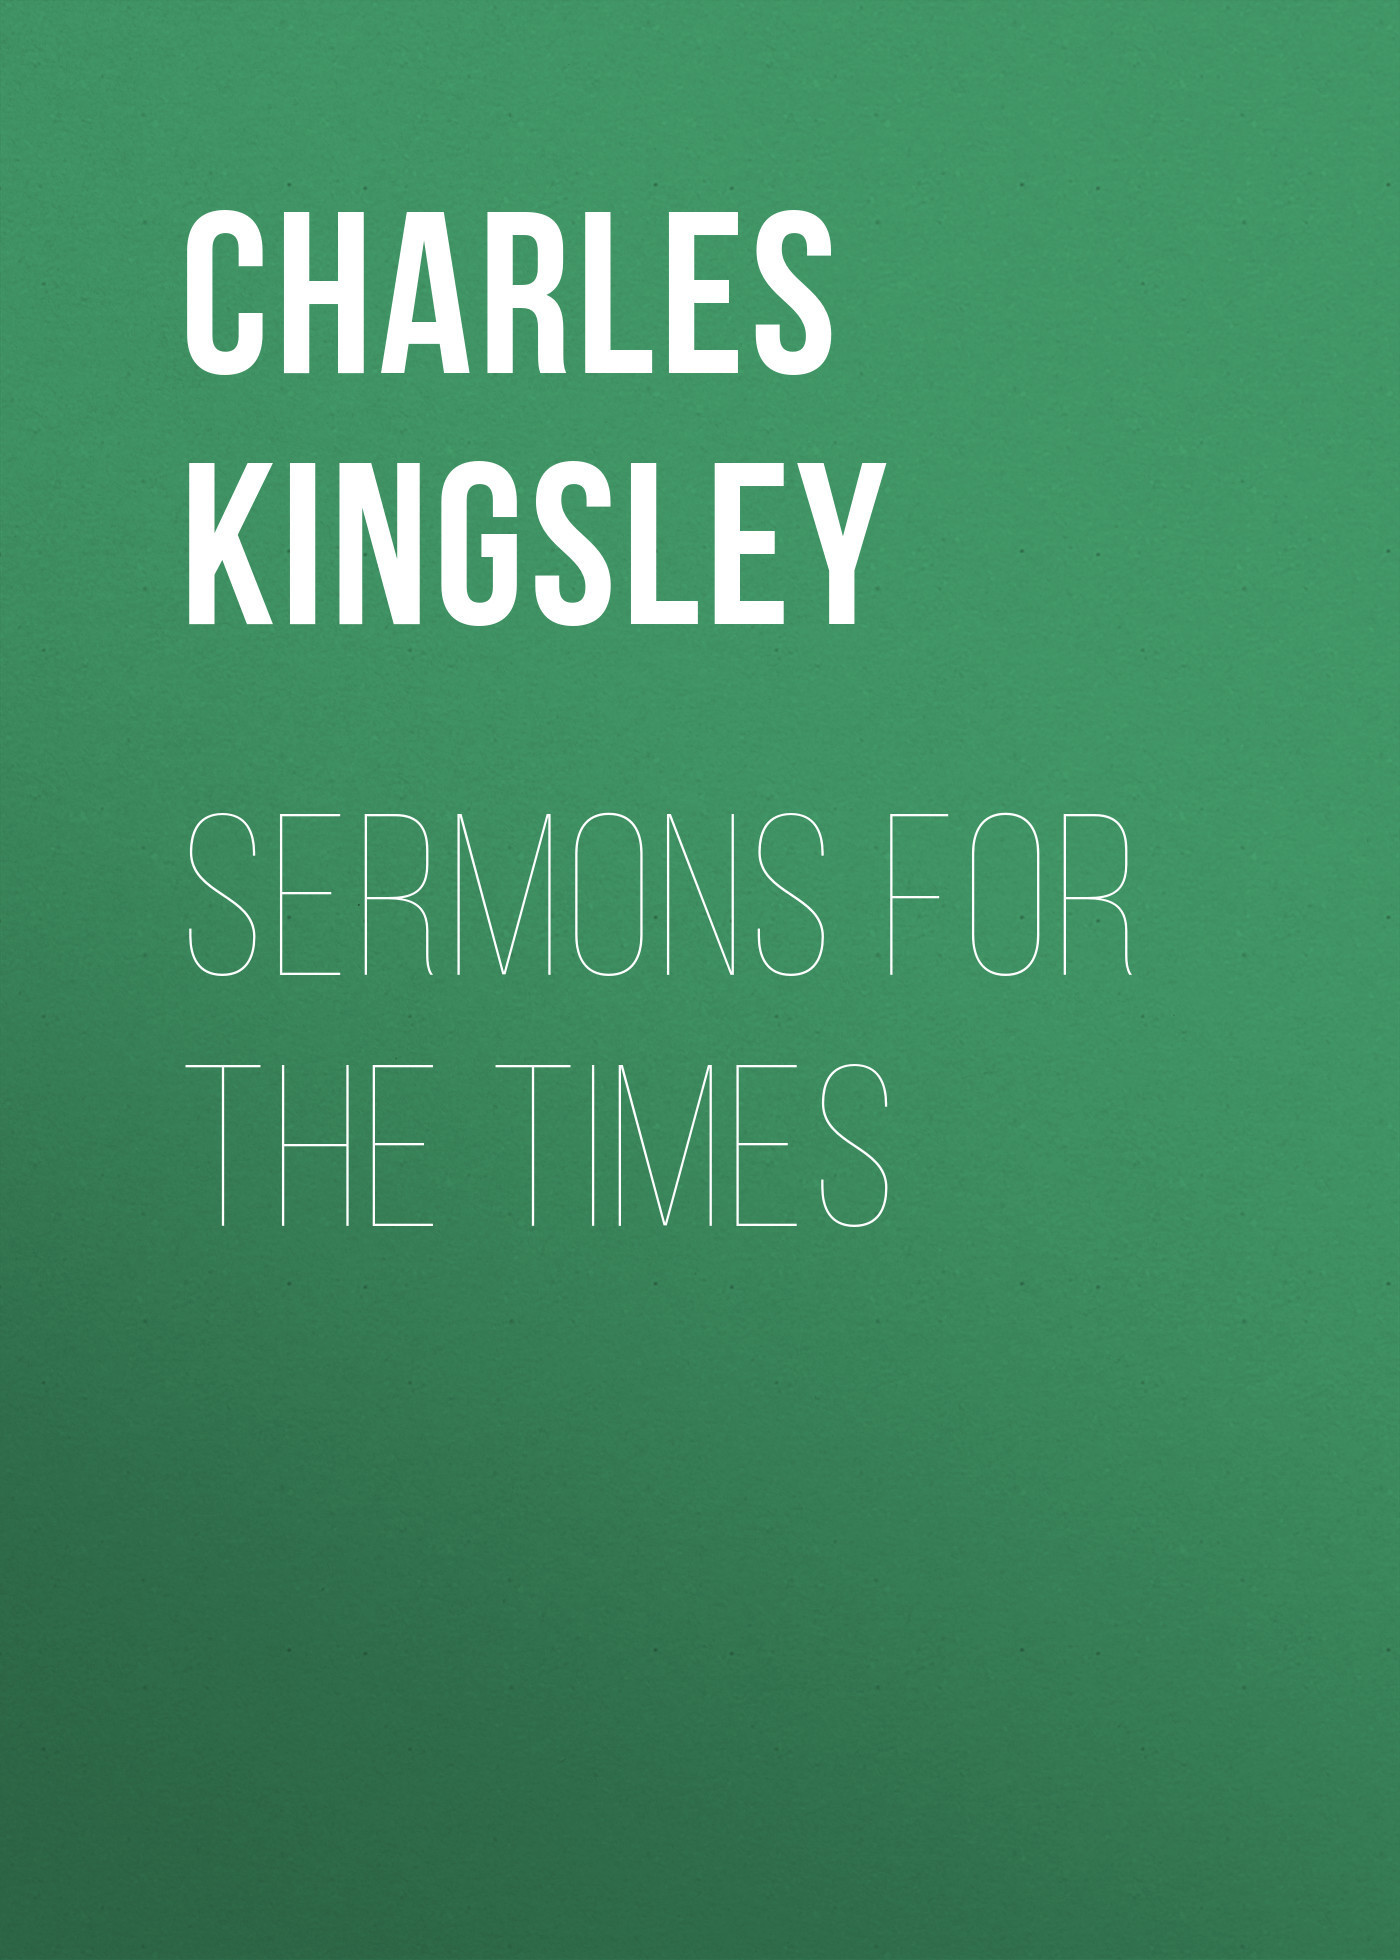 Charles Kingsley Sermons for the Times jd mcpherson jd mcpherson let the good times roll